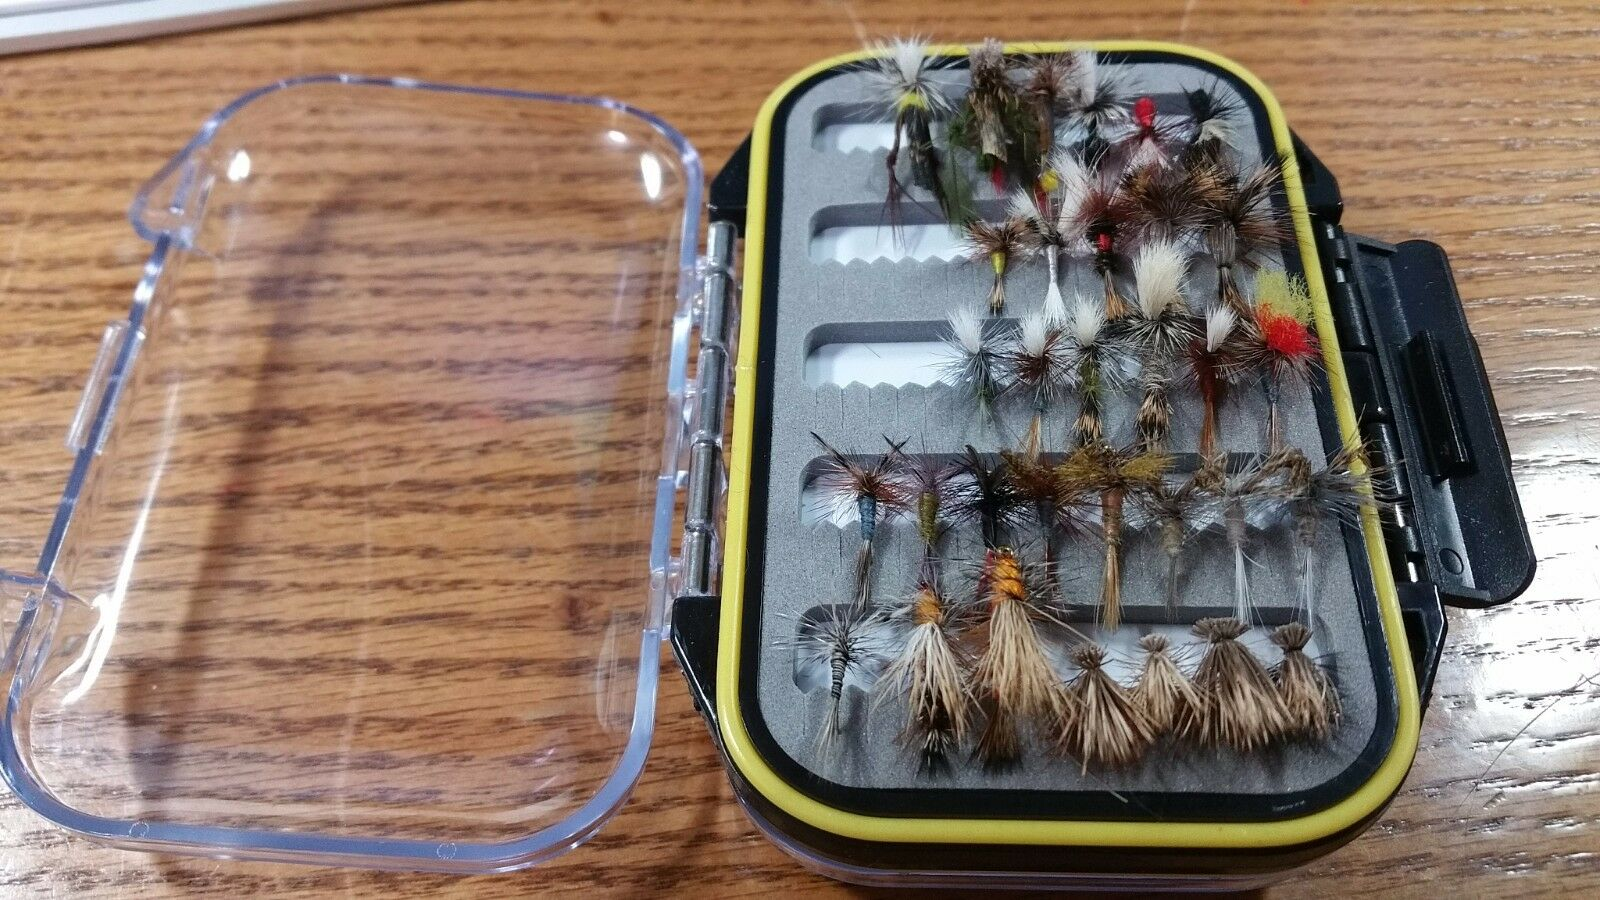 Grab Bag - 72 72 72 Preselected Fly Assortment & Fly Box - Trout, Panfish, Crappie c7c527